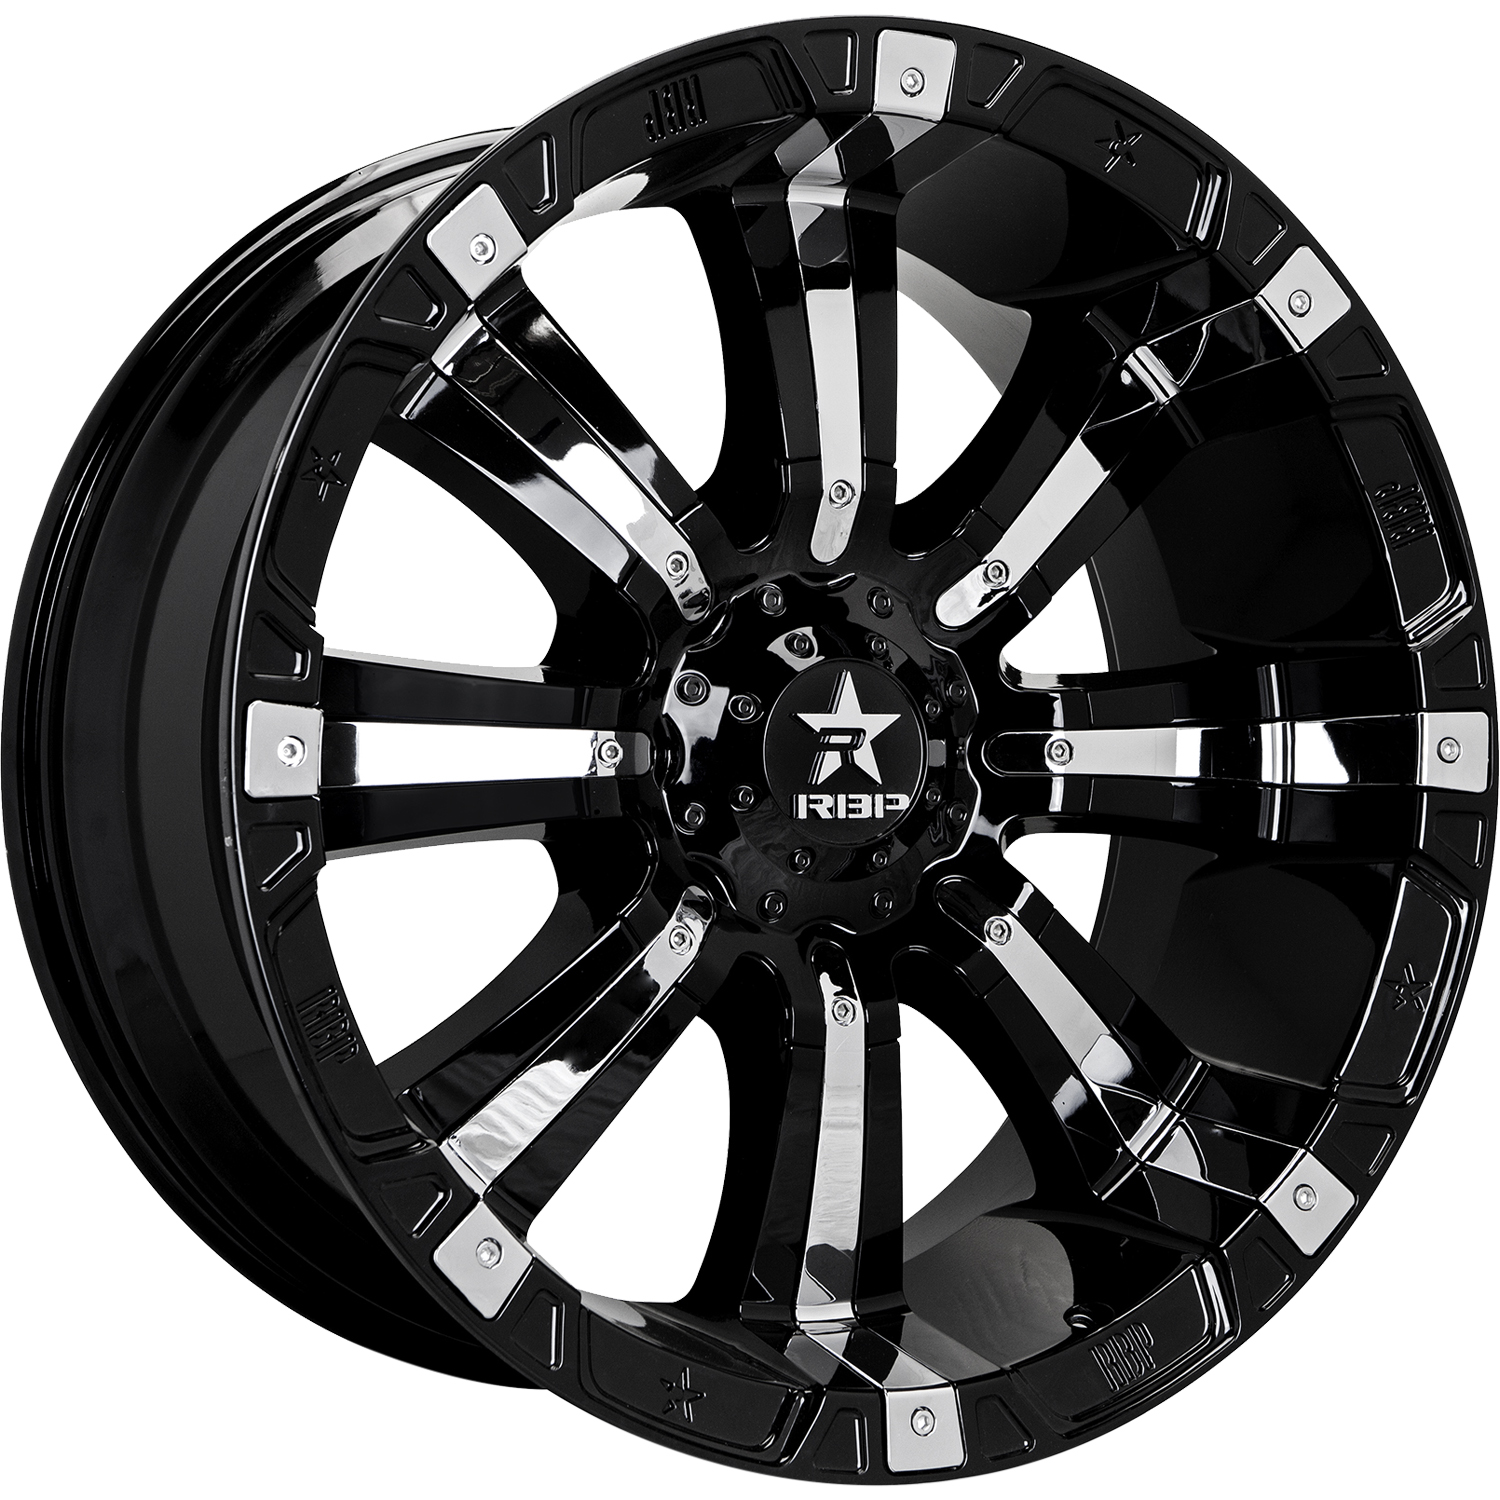 RBP 94R 17x9  12mm | 94R 1790 50 12BP